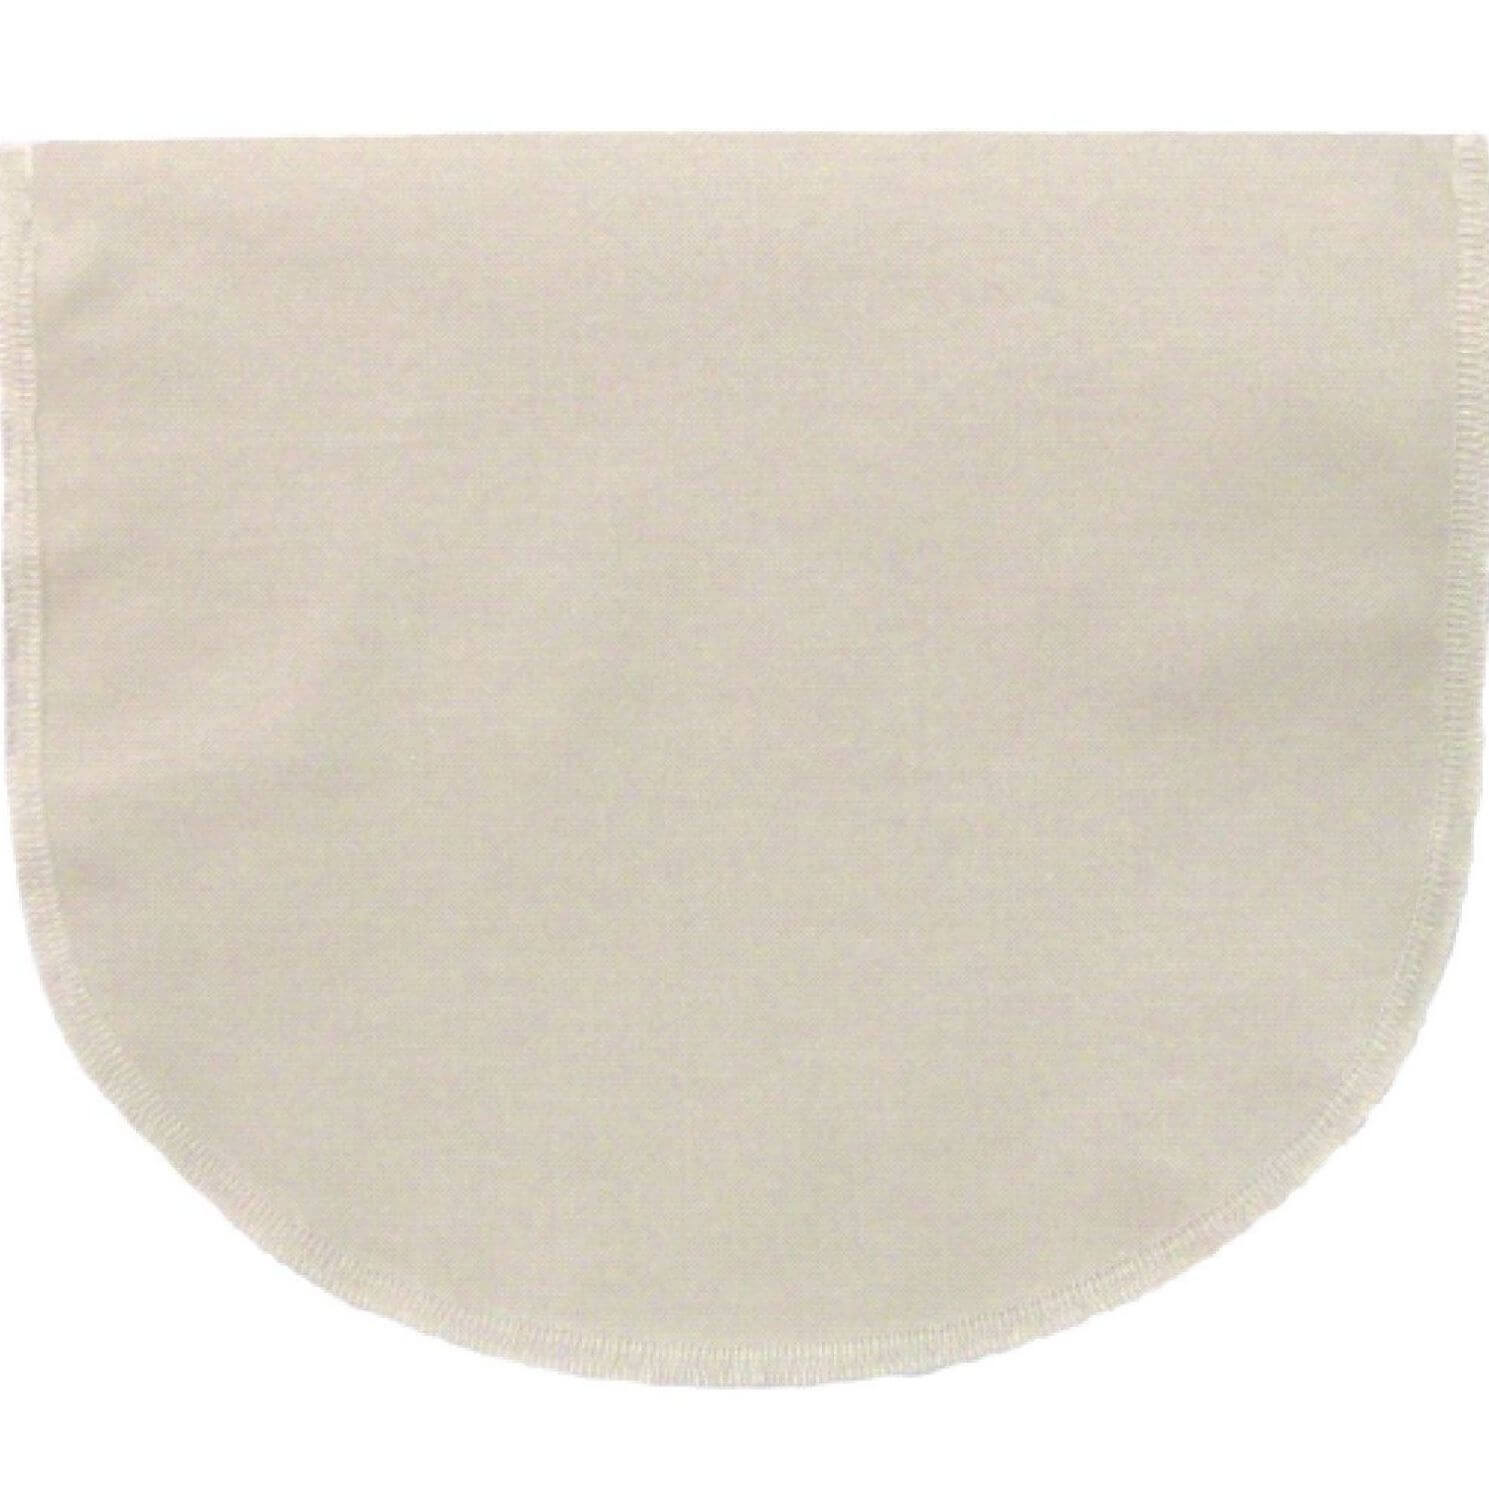 Ivory Cotton Cleavage Cover